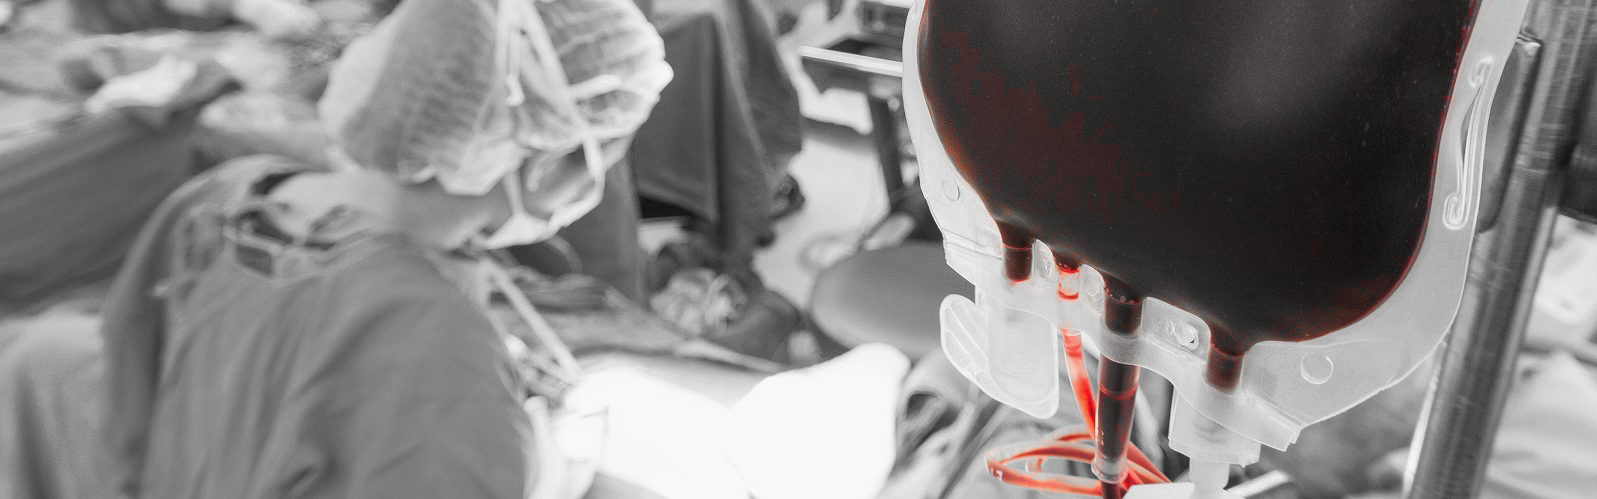 Blood transfusion in a operation room